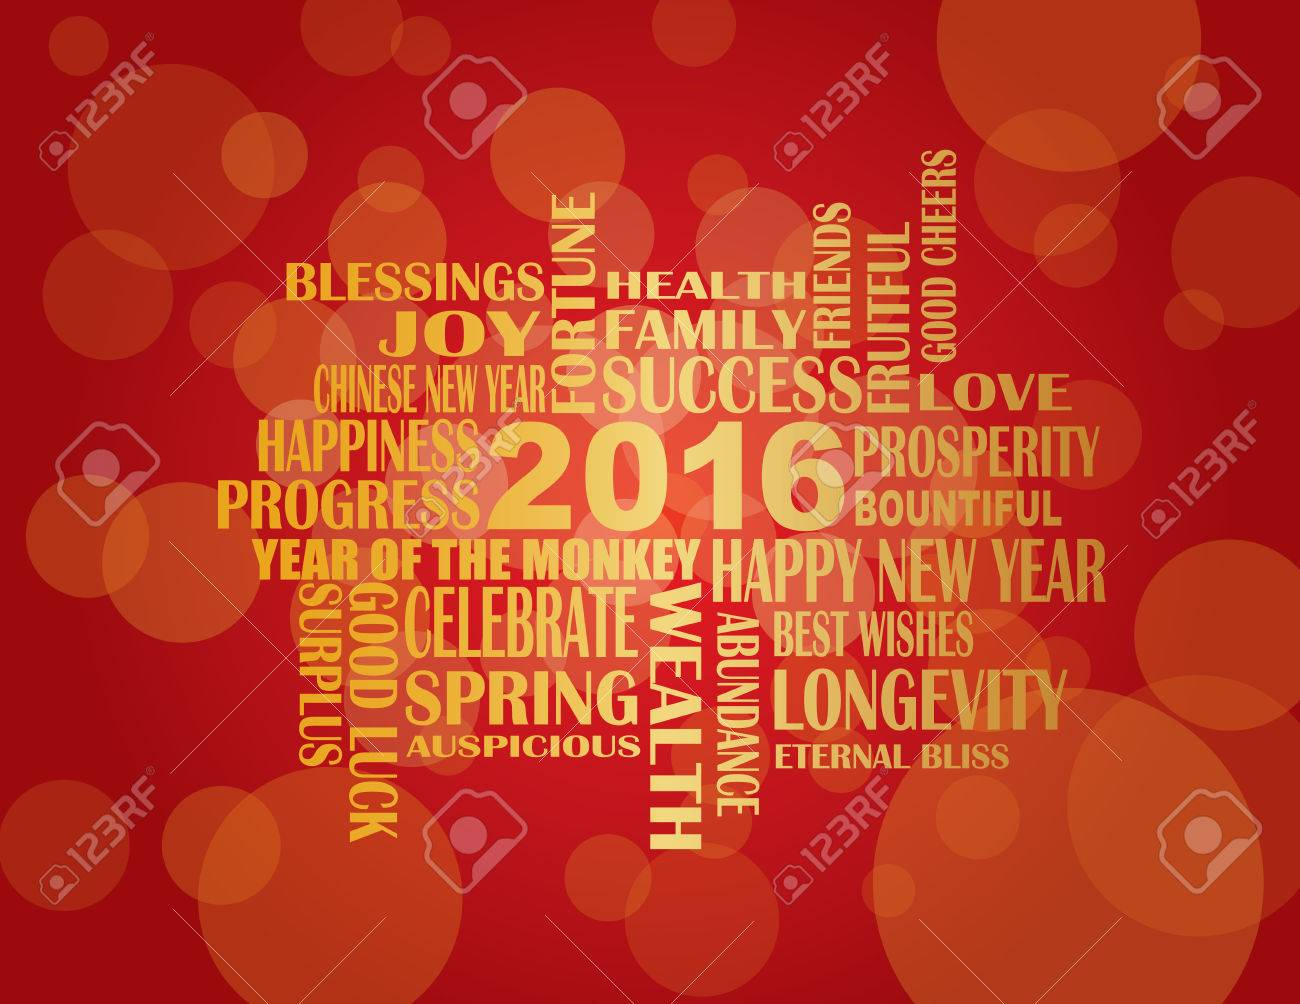 2016 chinese lunar new year english greetings text wishing health 2016 chinese lunar new year english greetings text wishing health good fortune prosperity happiness in the kristyandbryce Image collections